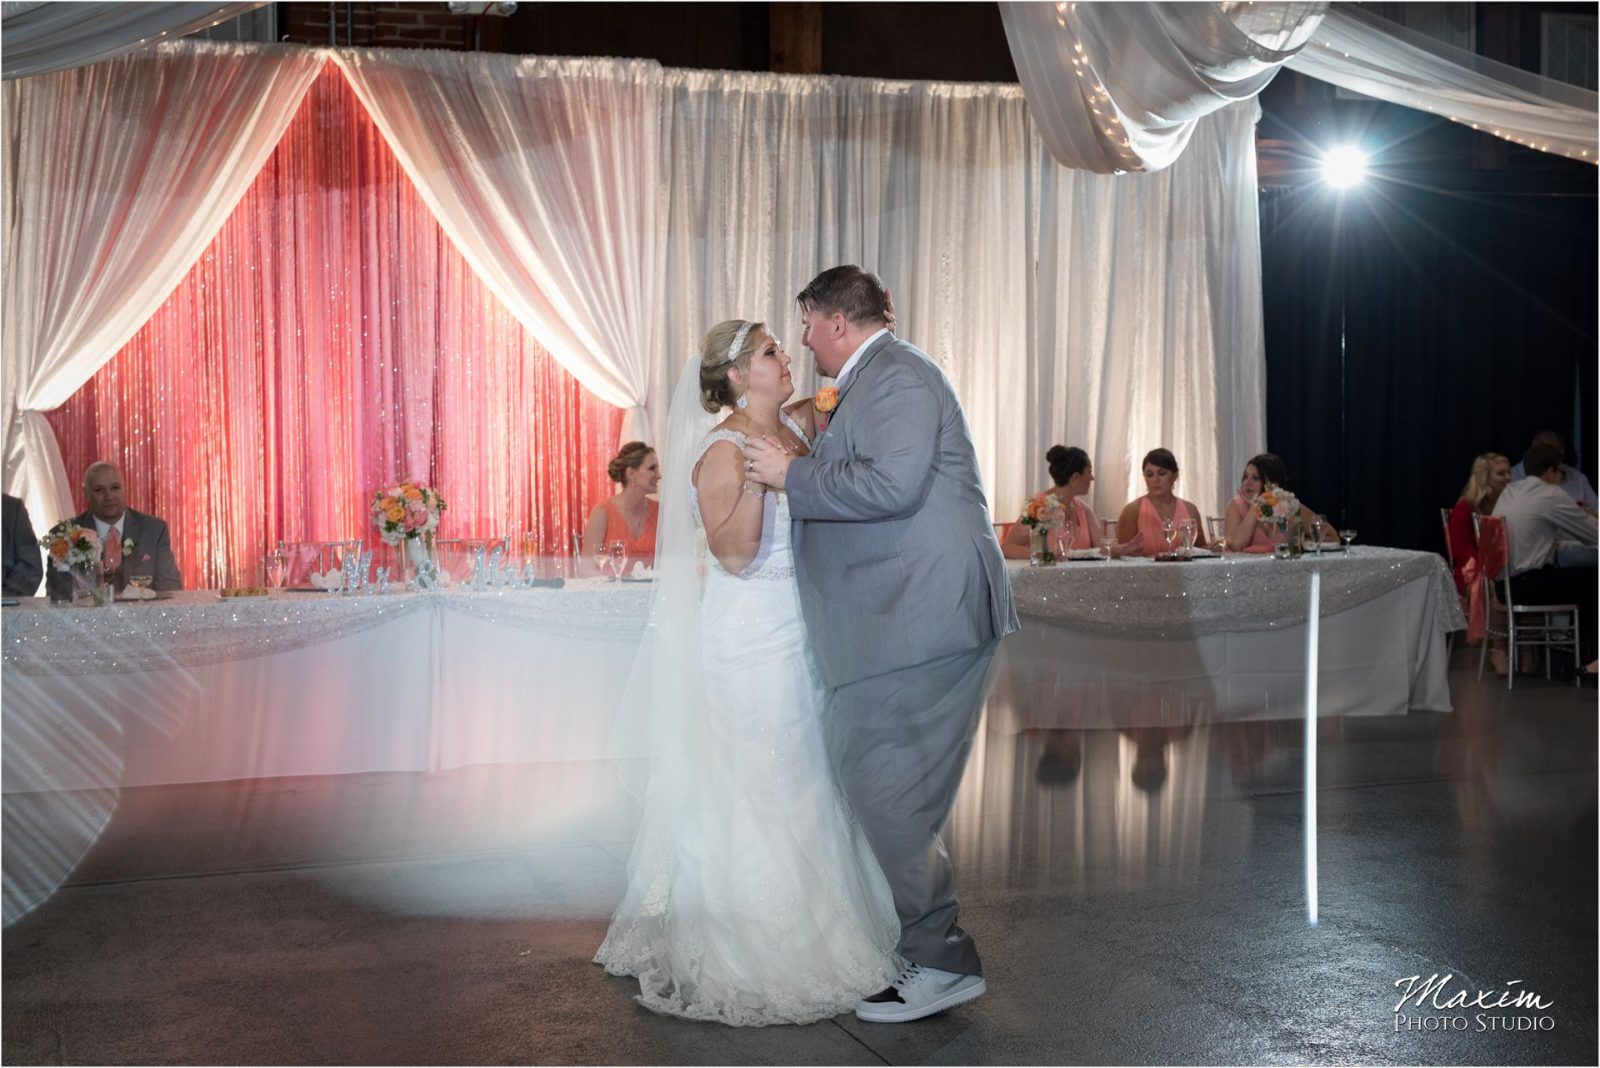 Top of the Market Dayton Ohio Wedding Reception dance